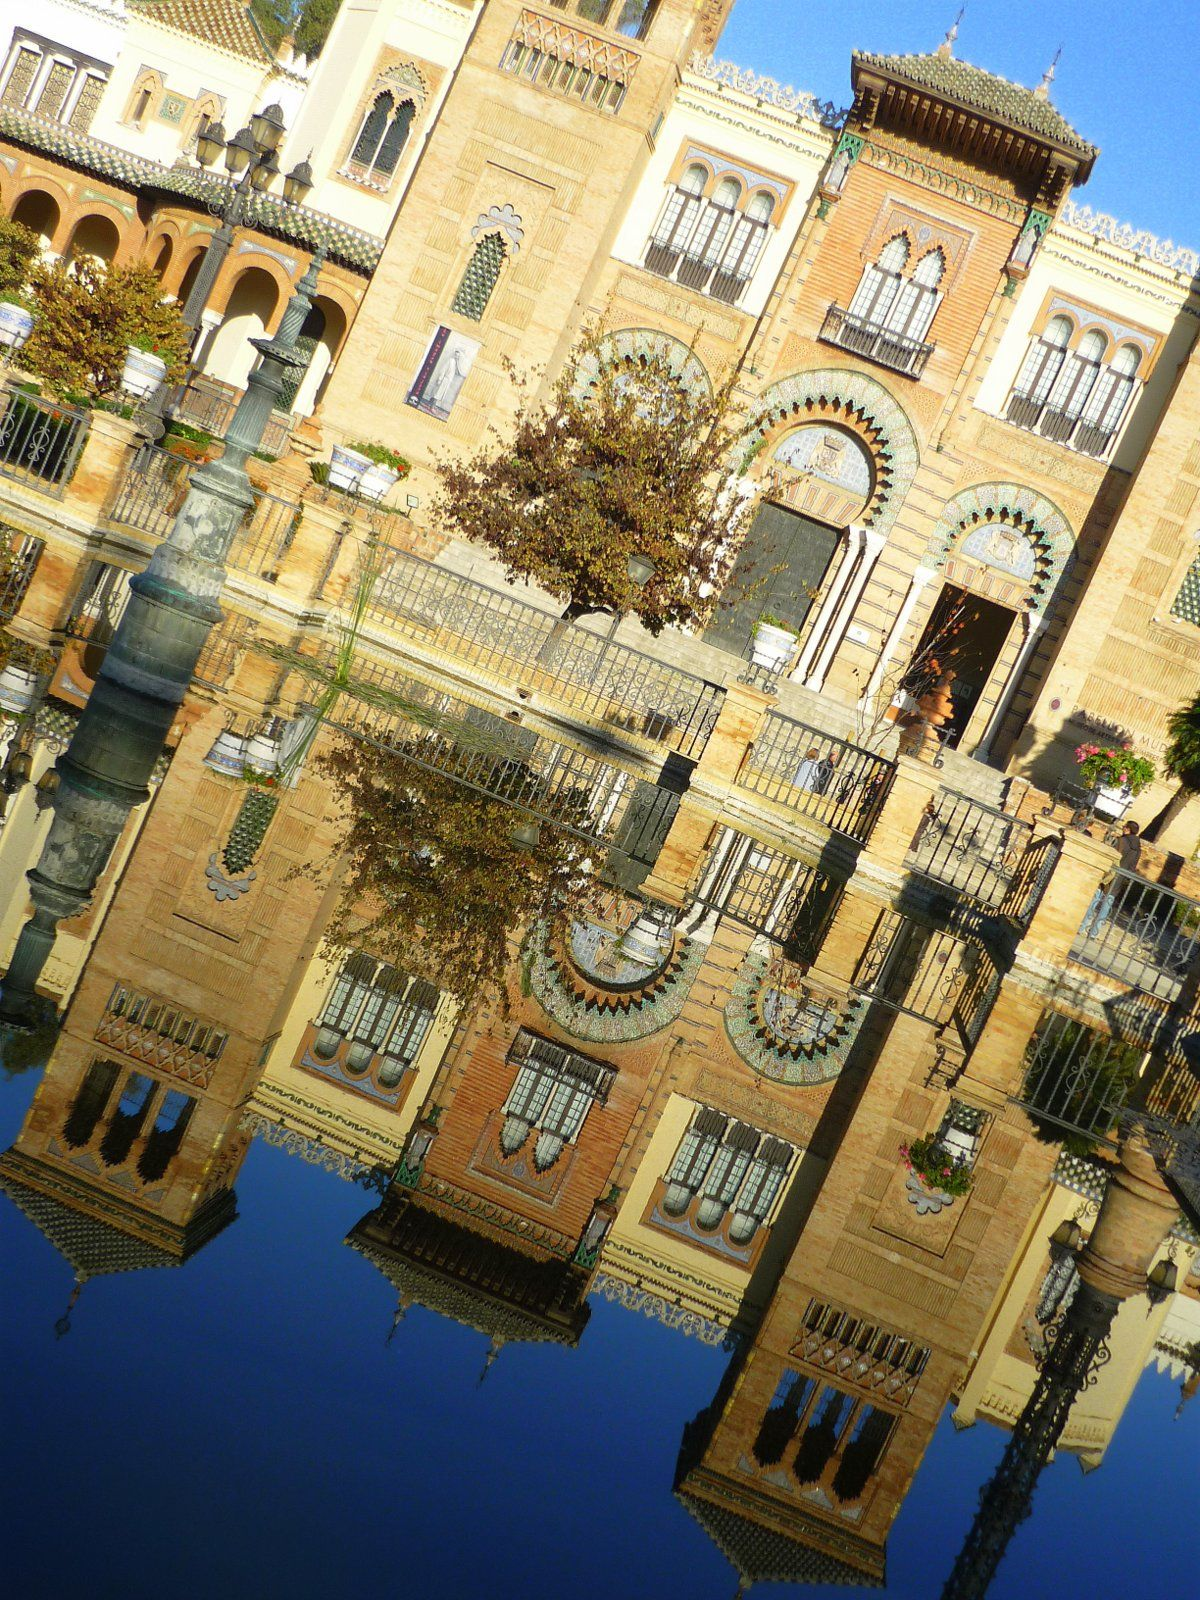 Seville Museums